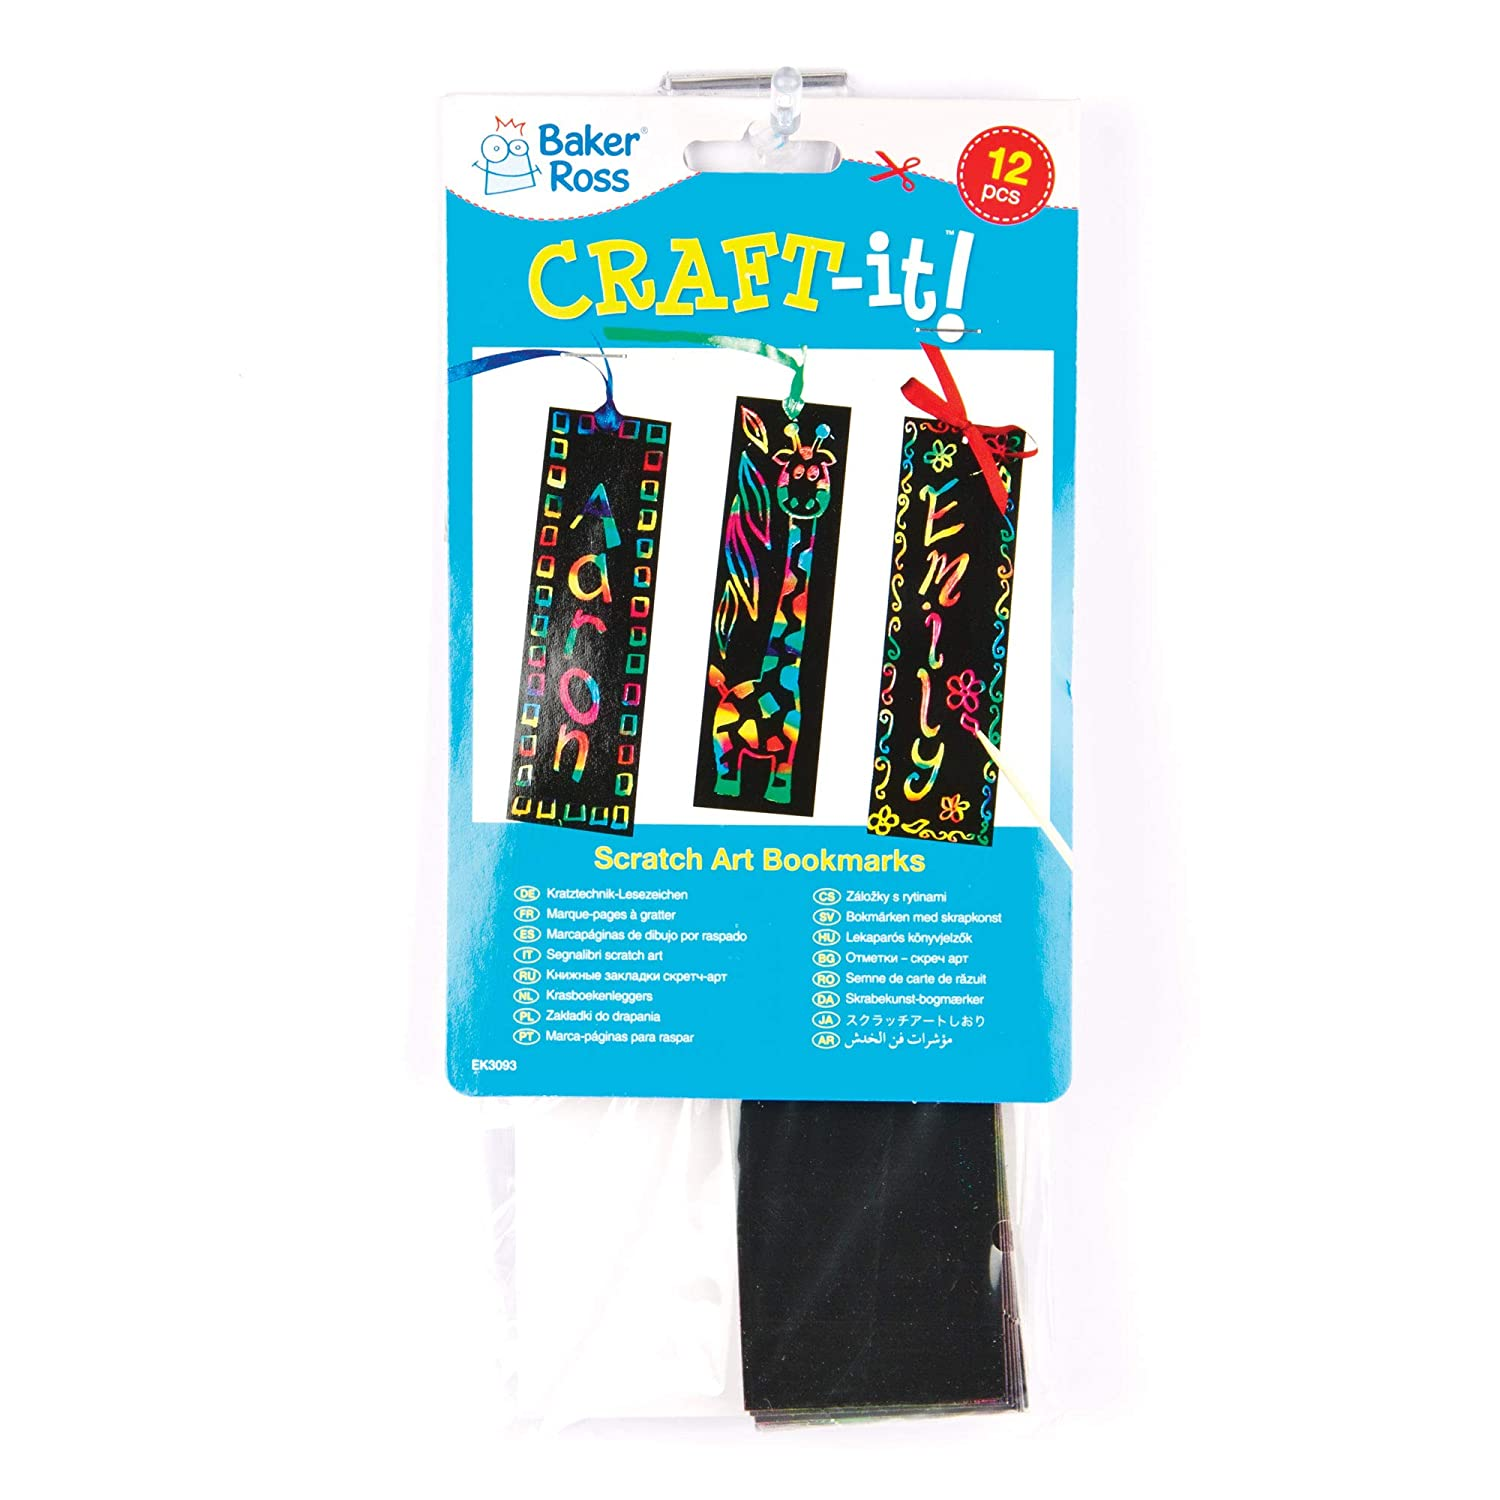 Pack of 12 Scratch Art Bookmarks